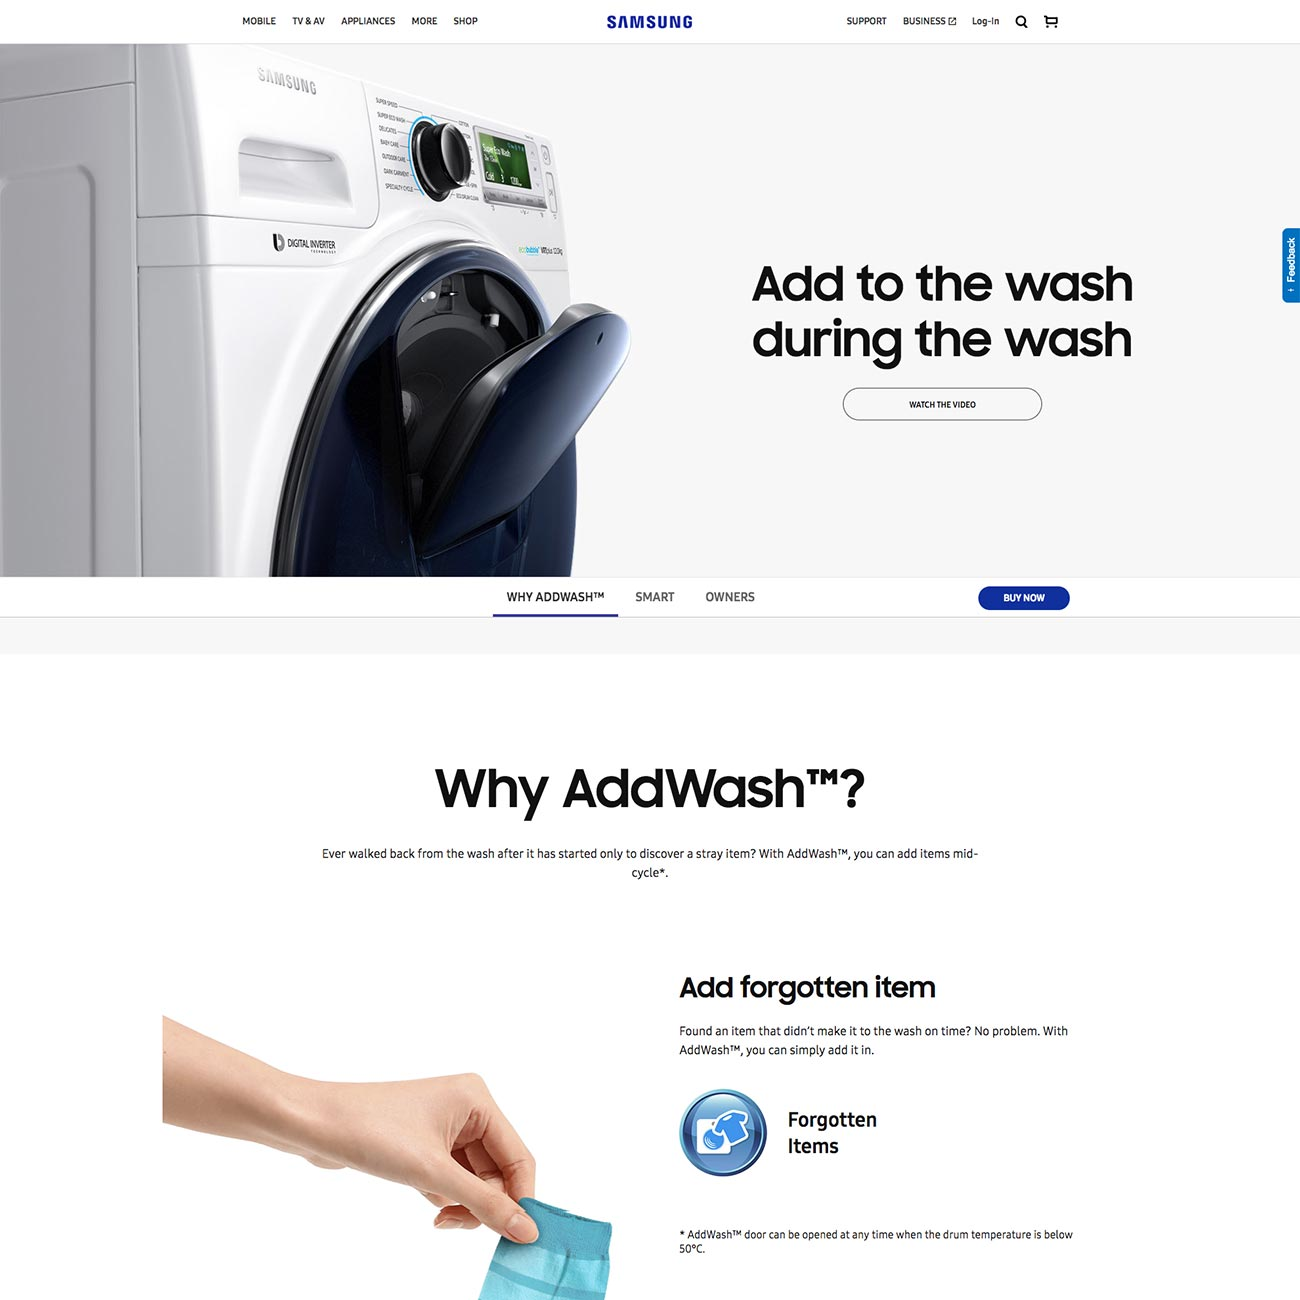 Samsung AddWash Washing Machines